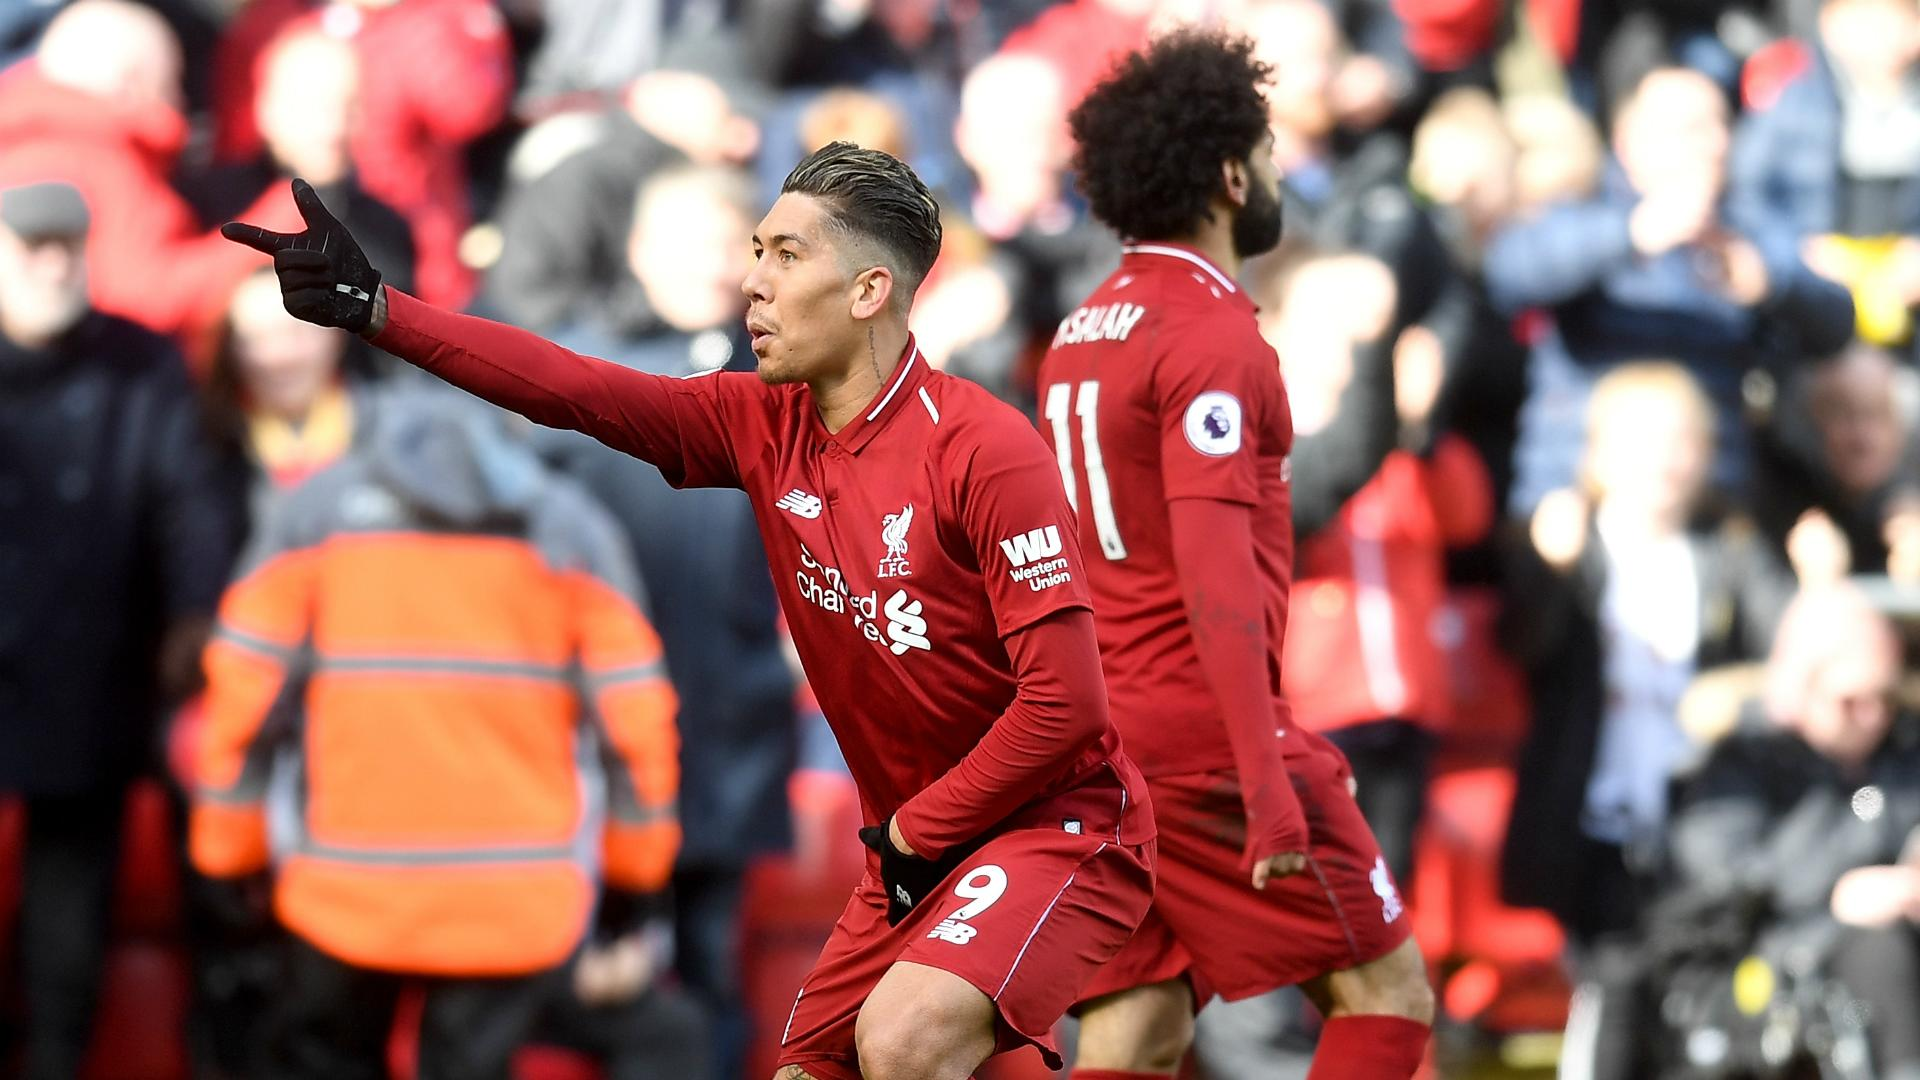 Liverpool 4 Burnley 2: The Match Review - The Anfield Wrap